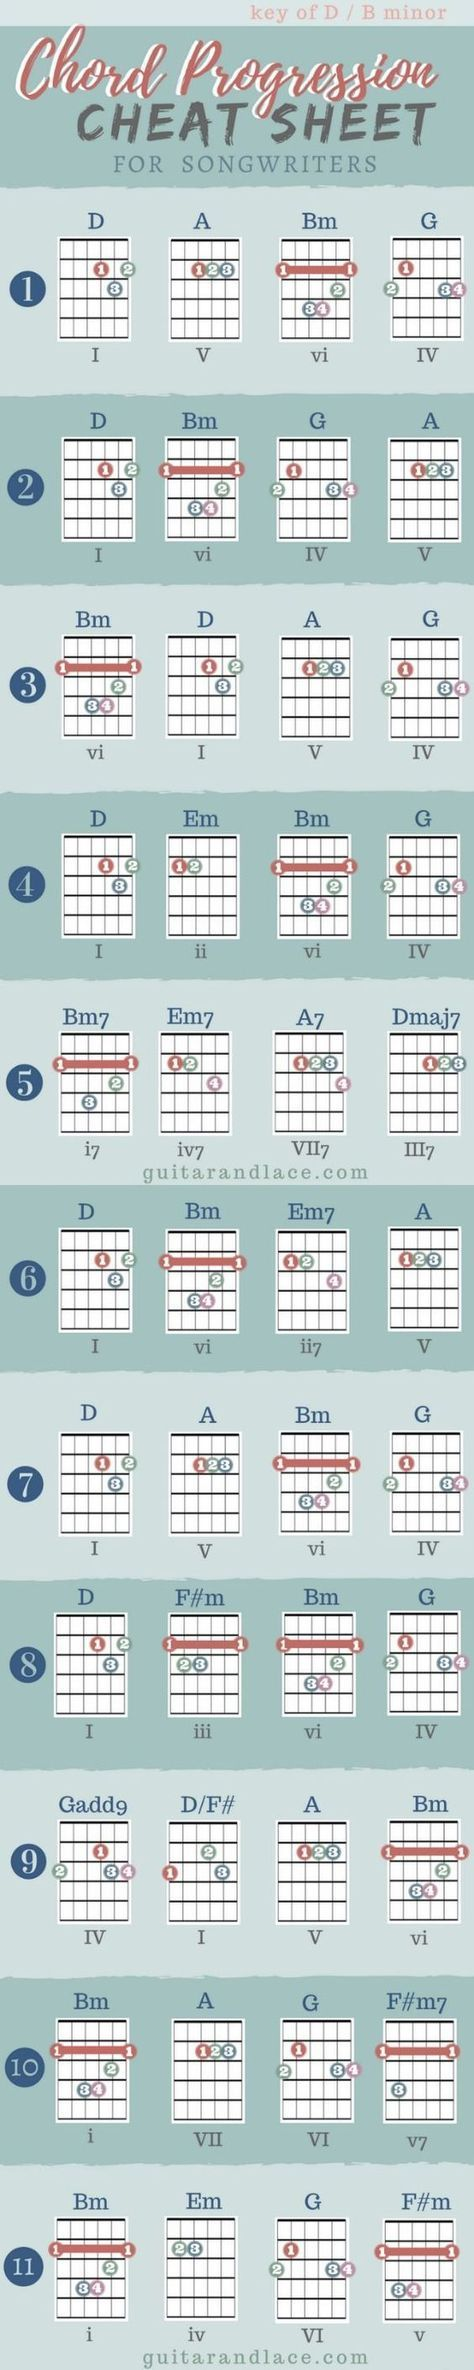 1471 best Guitar images on Pinterest | Electric guitars, Bass ...